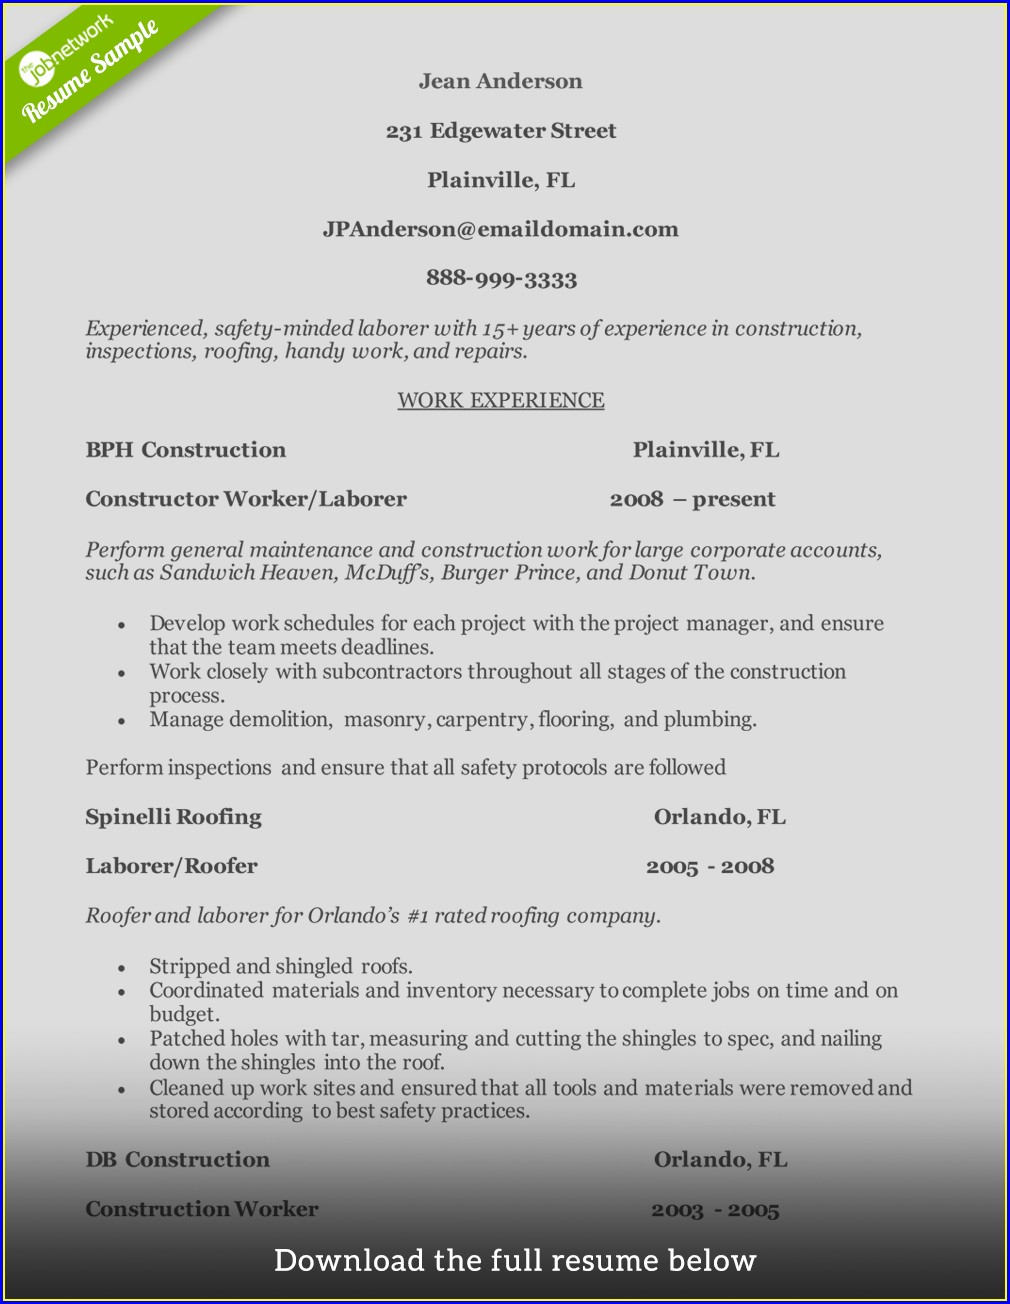 Resume For Construction Worker With No Experience